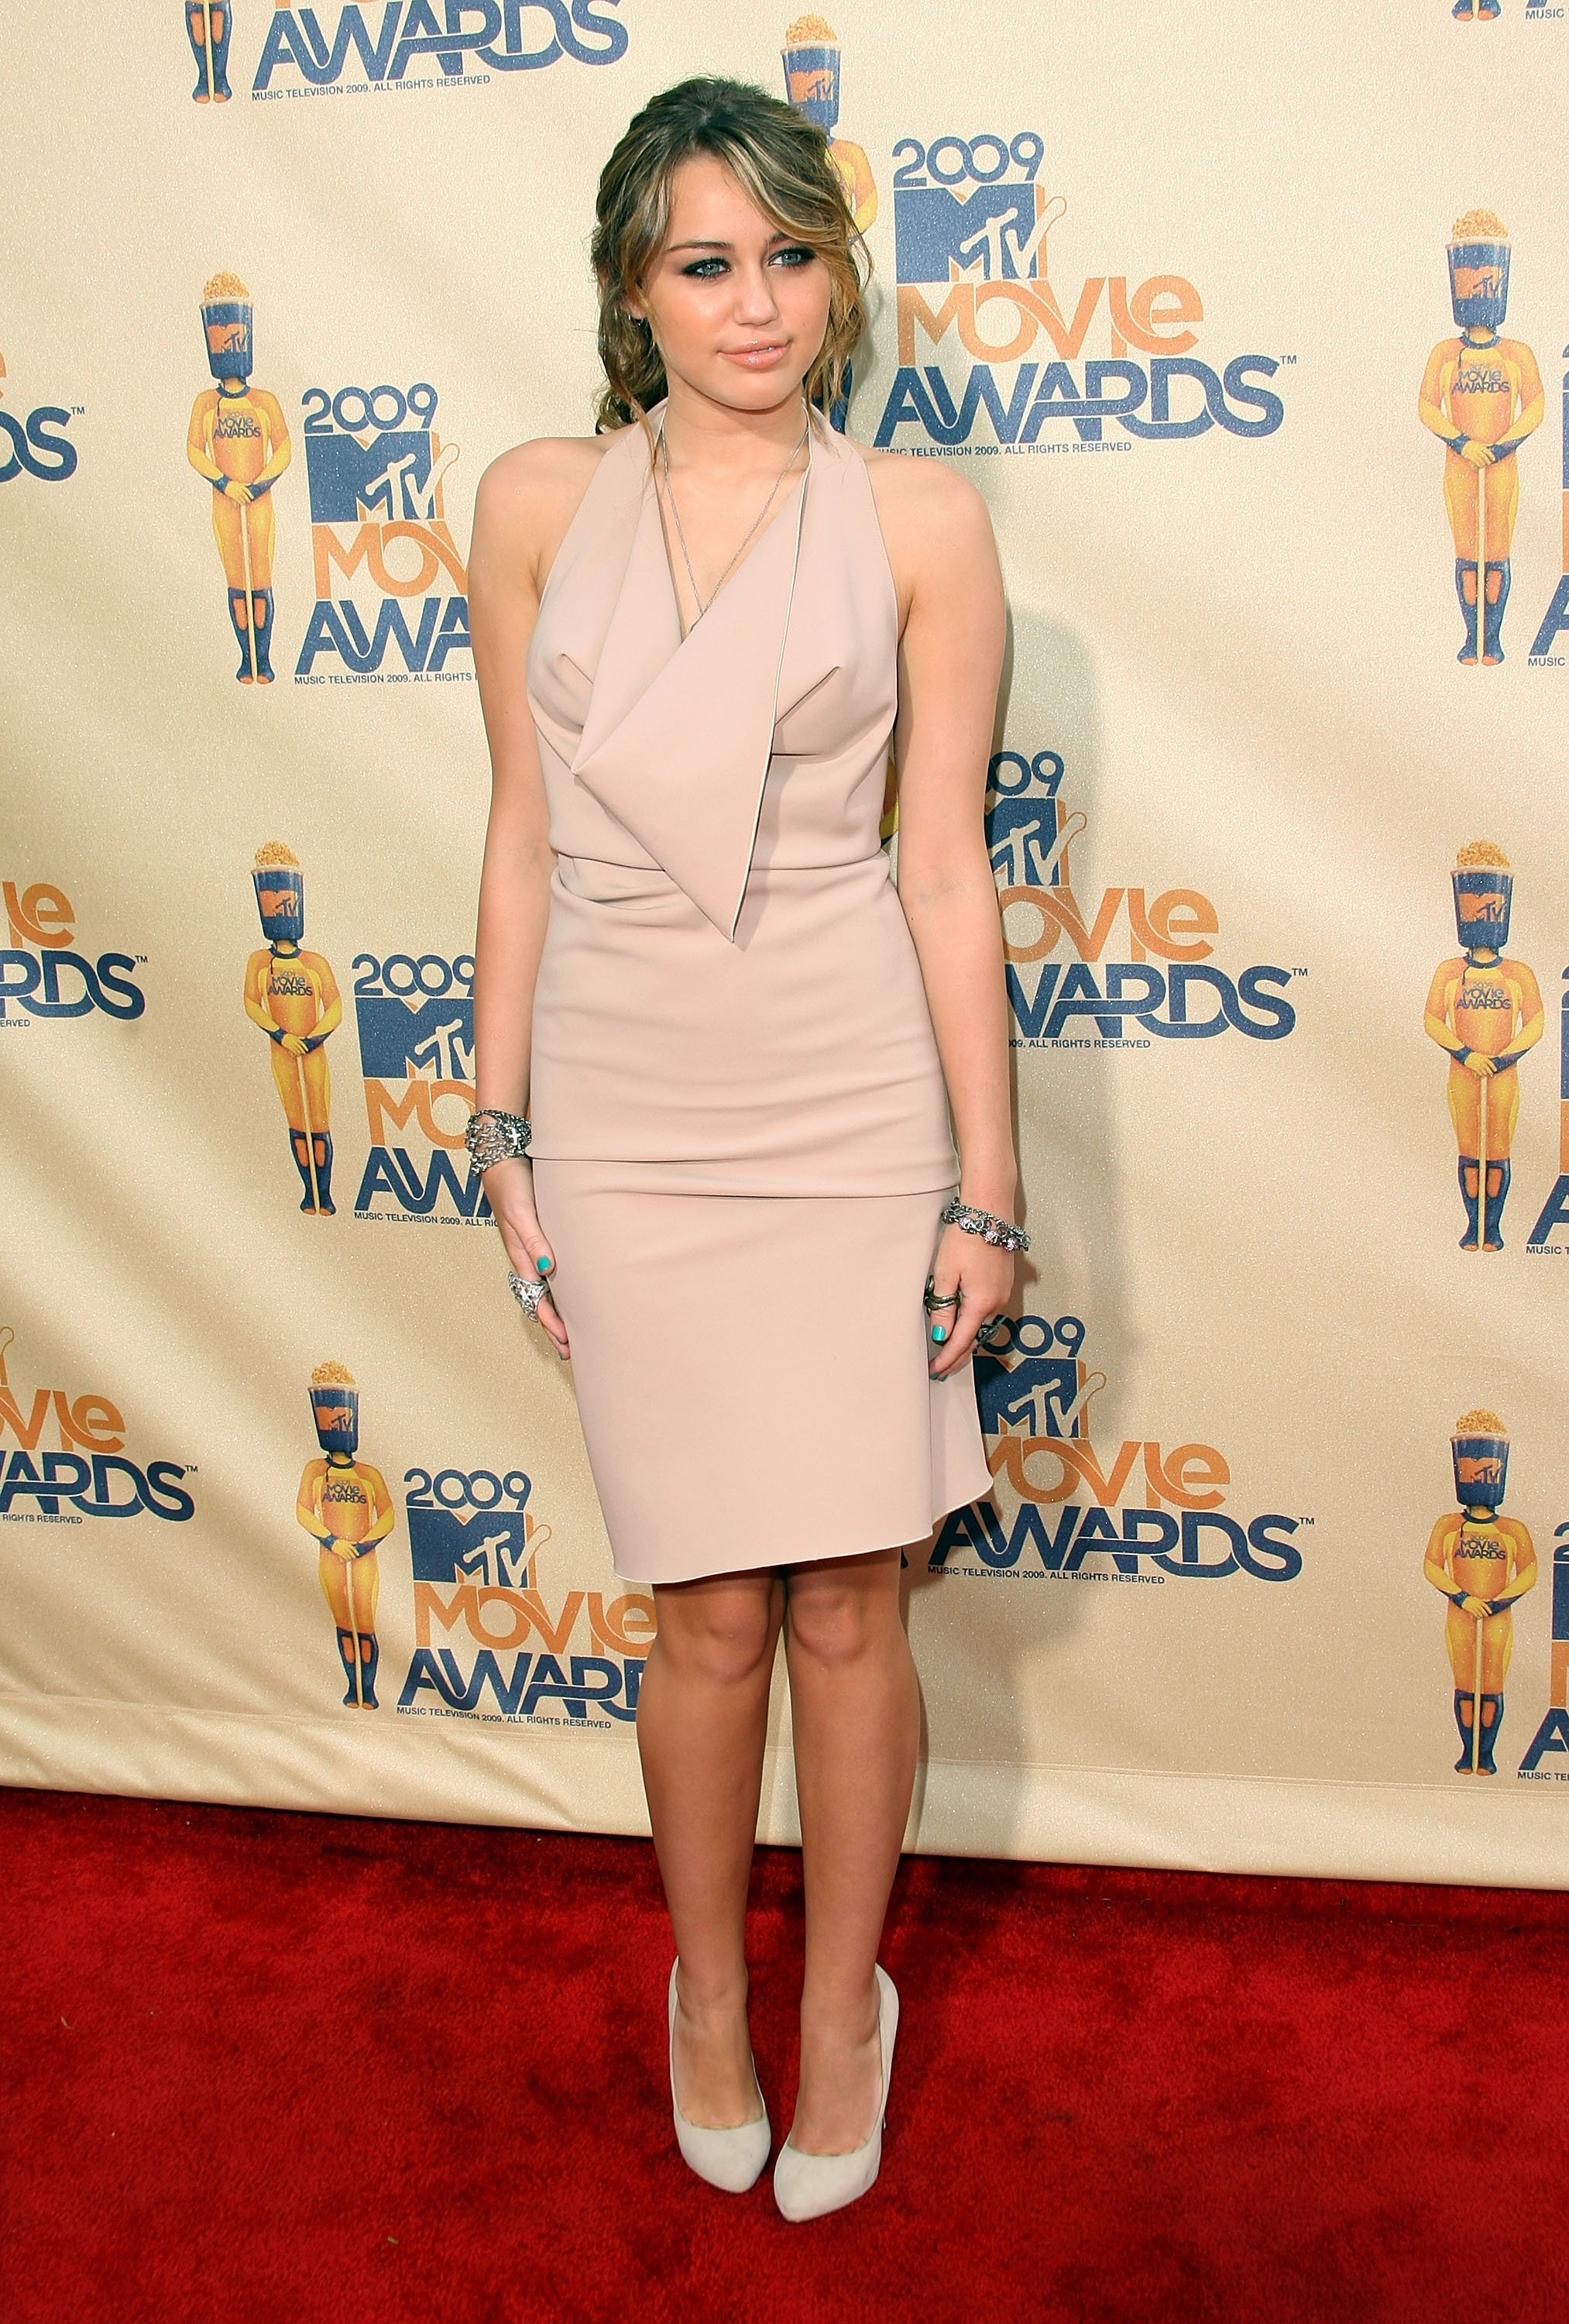 23263_Celebutopia-Miley_Cyrus_arrives_at_the_2009_MTV_Movie_Awards-12_122_1178lo.jpg